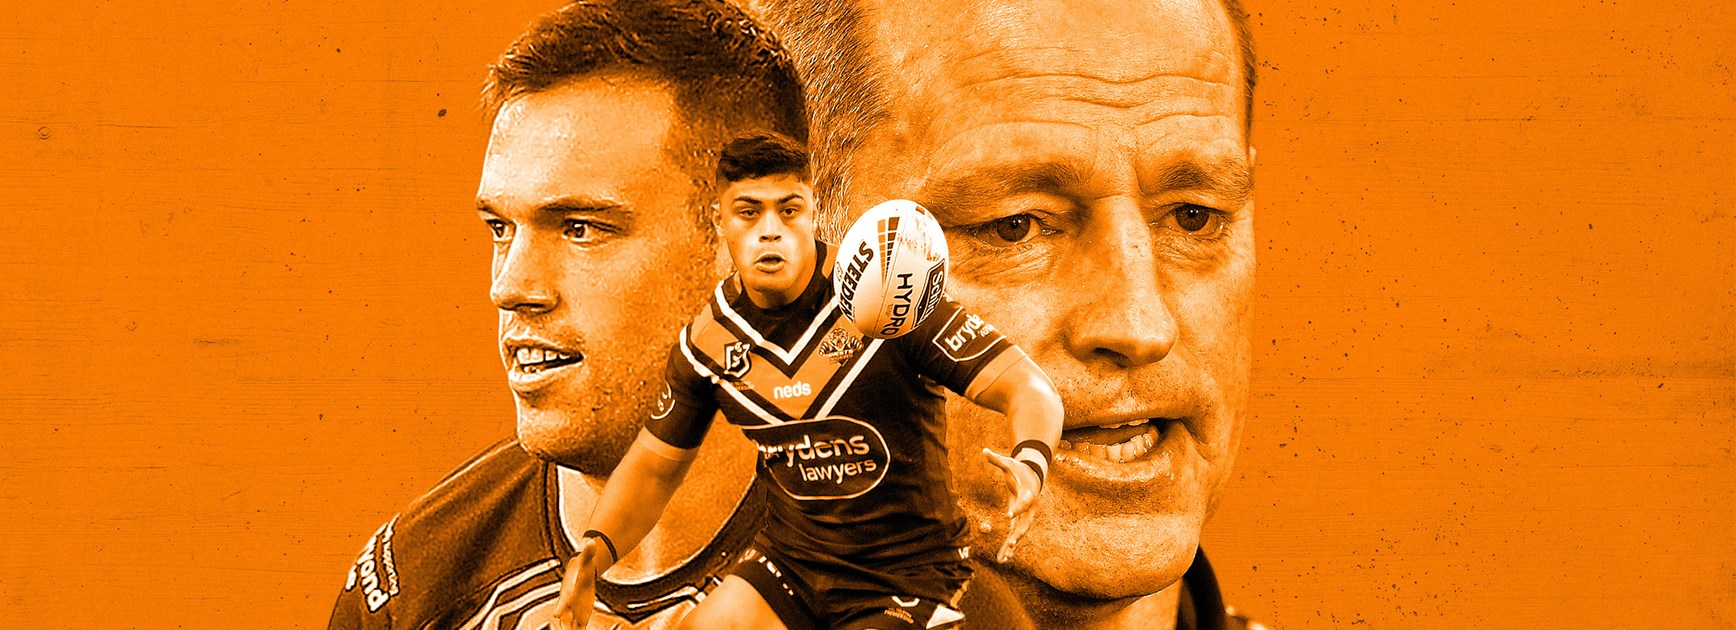 Wests Tigers 2021 season preview: Cavalry arrives to end drought